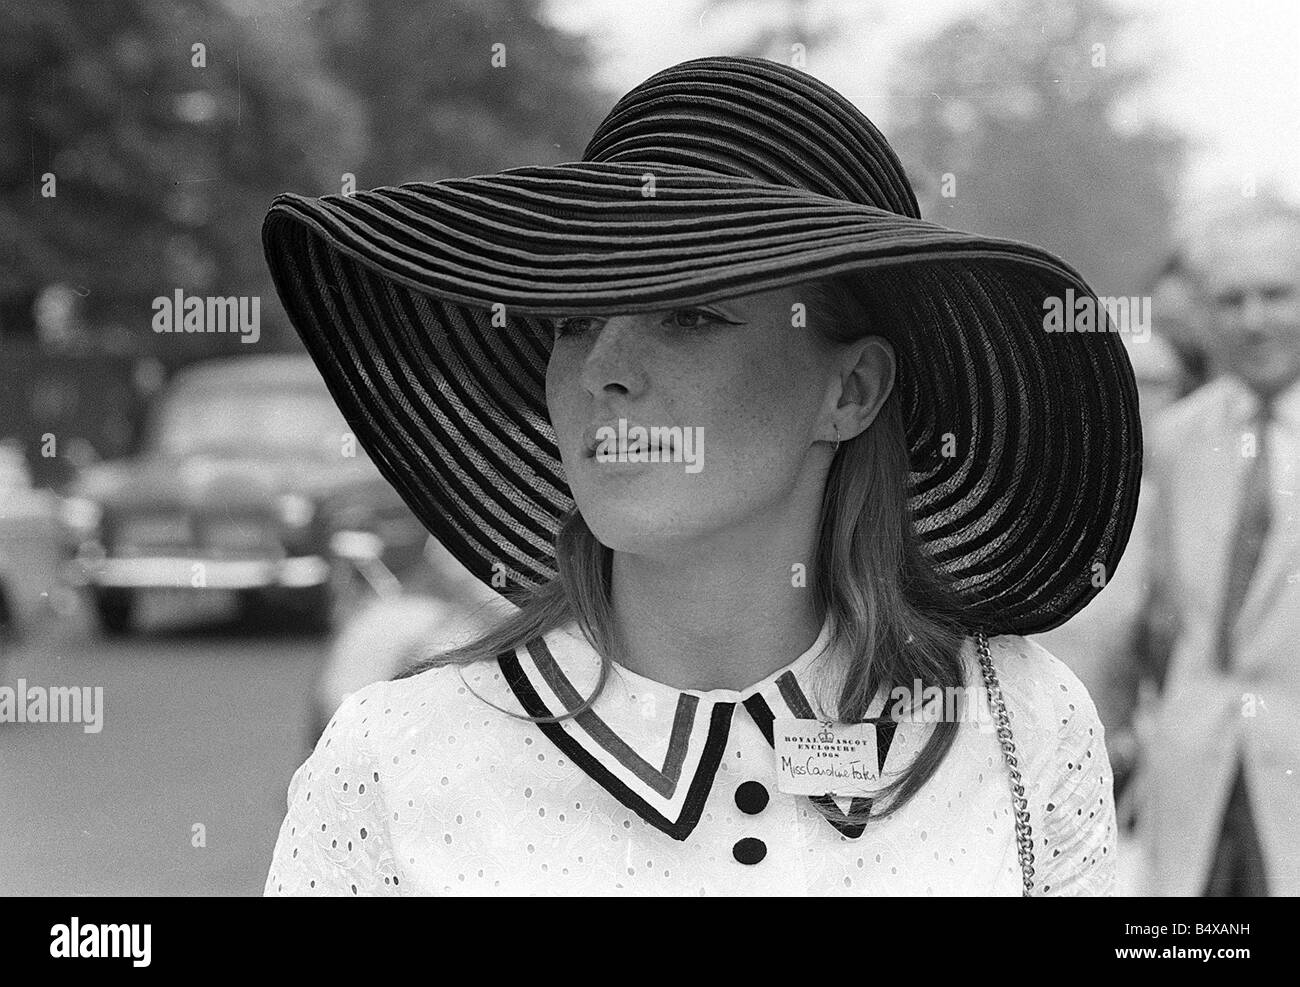 1968 Clothing Ascot Racing Fashion Woman Wearing white dress and floppy straw hat at Ascot Races - Stock Image